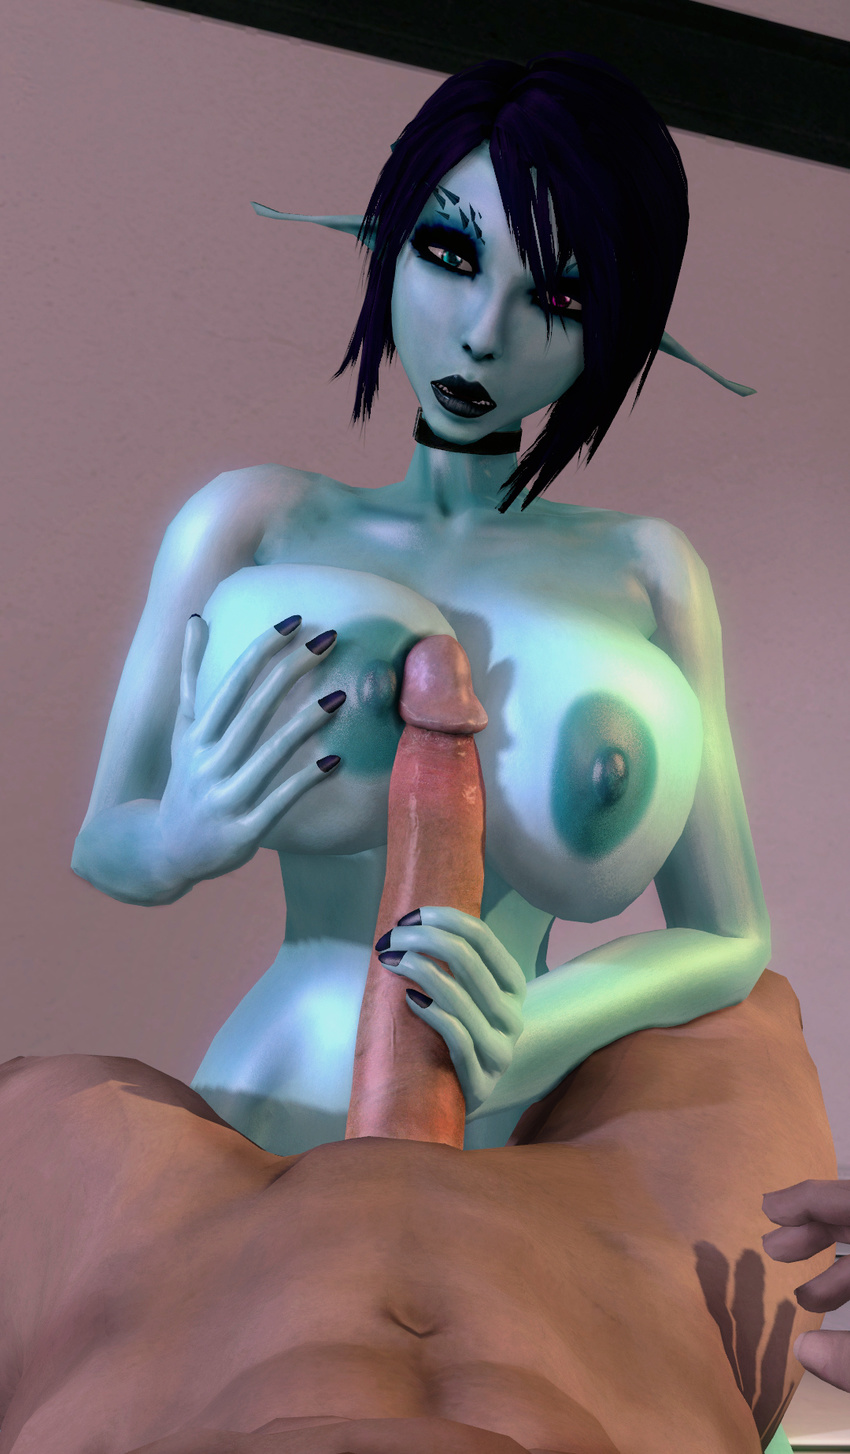 Garrys mod big boobs sex image